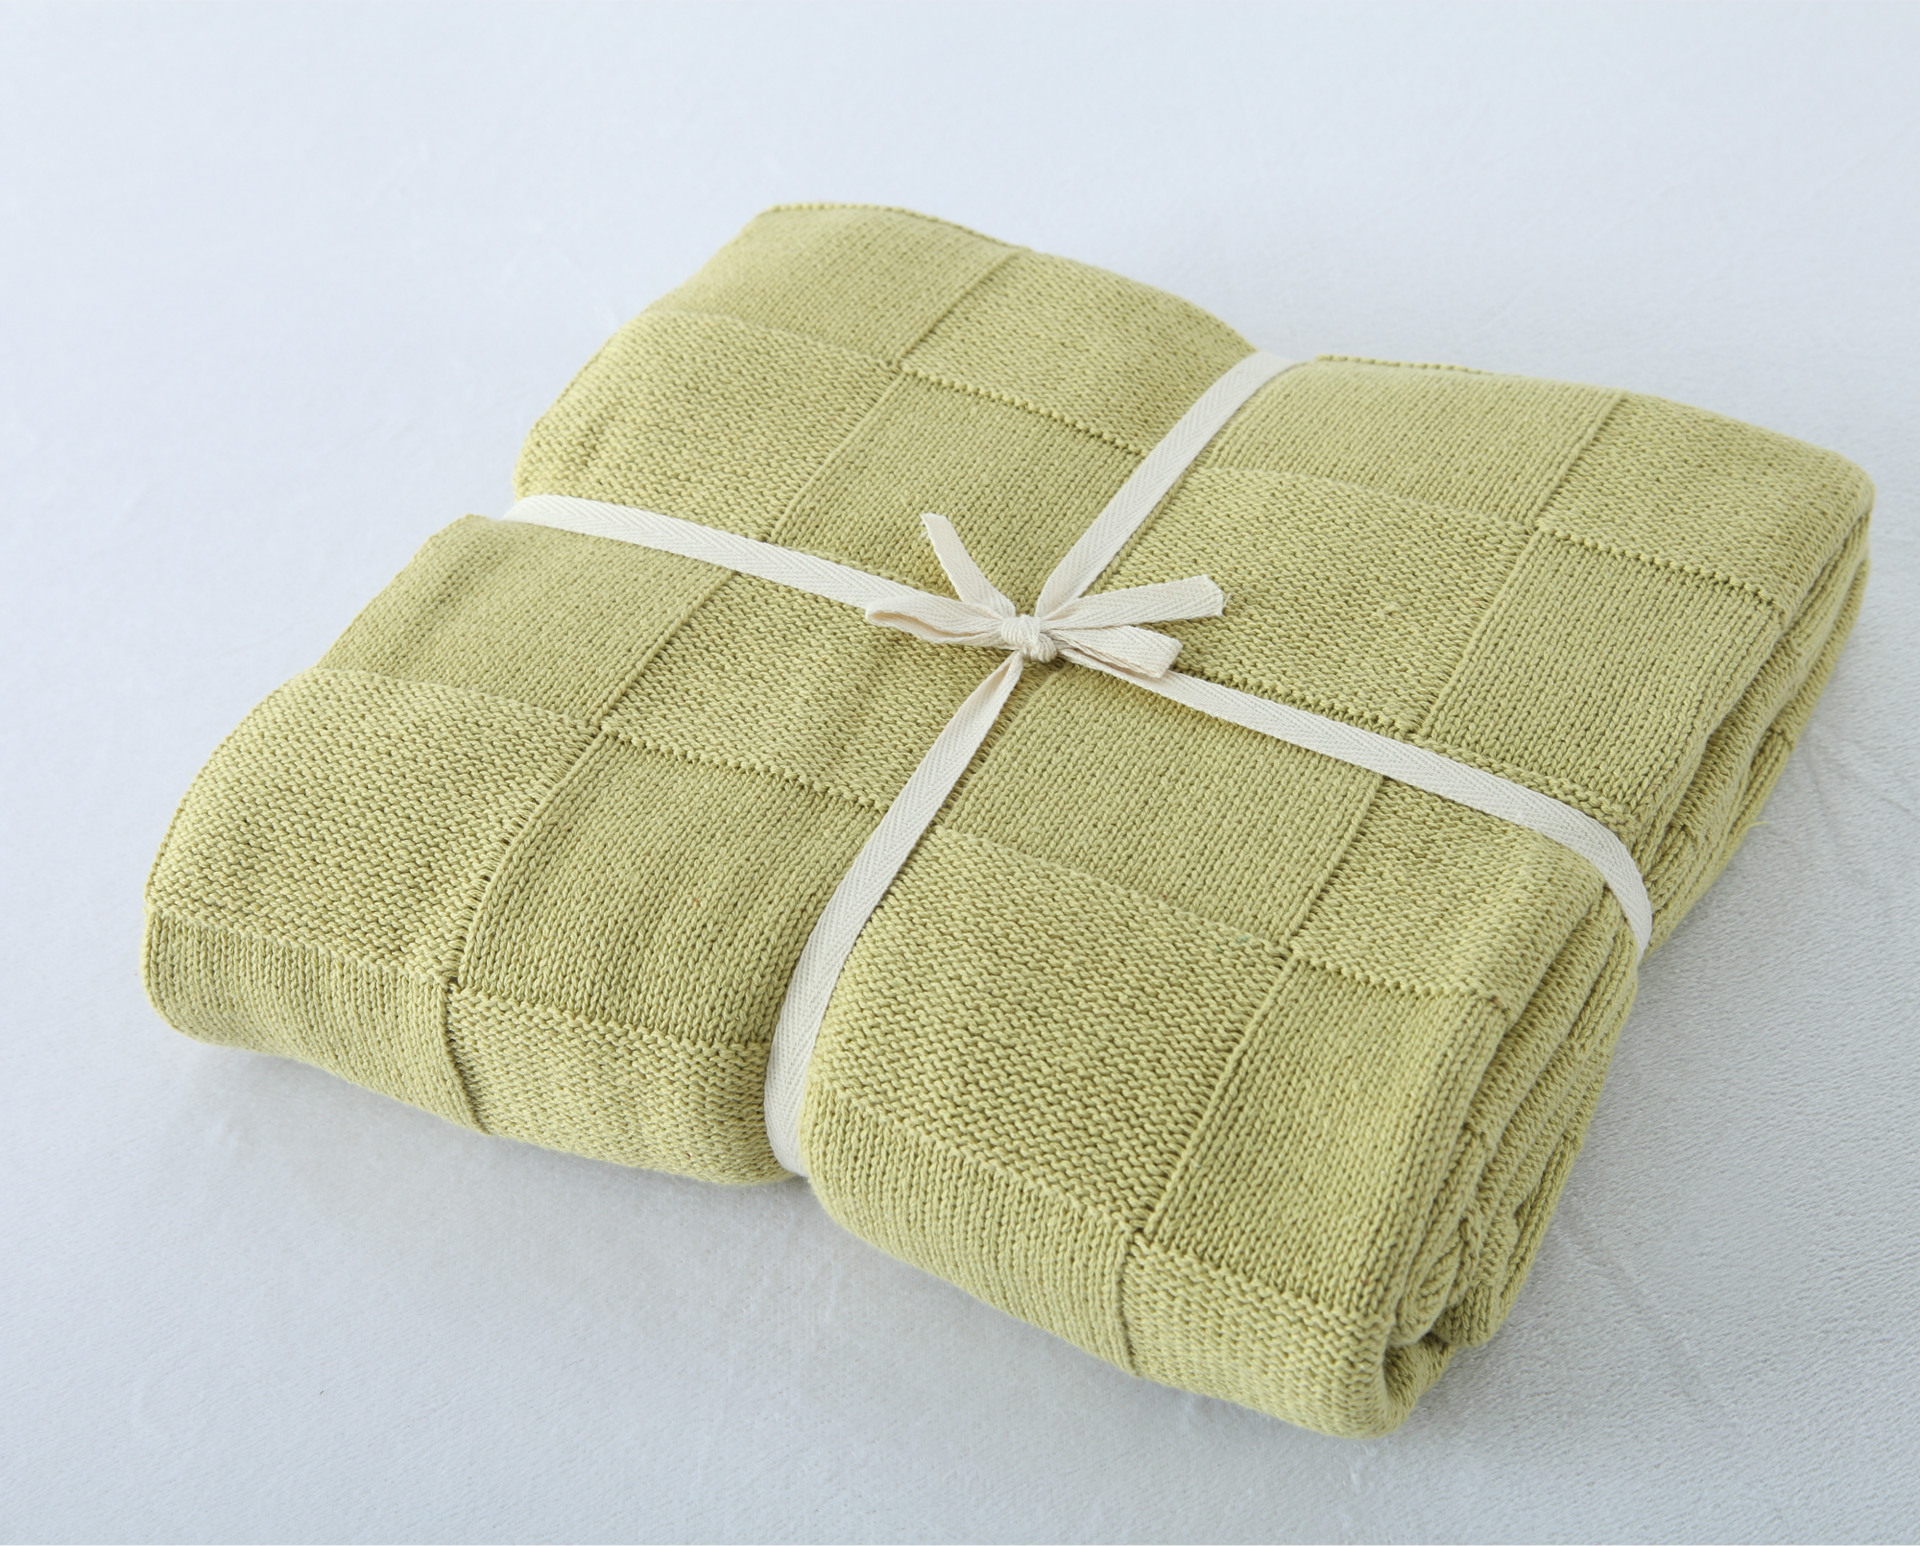 ФОТО New Green Plaid Knit Blanket for Summer/Autumn Throw Blankets on Bed Cable Knitted Blanket 100% Cotton 180x200cm Free Shipping